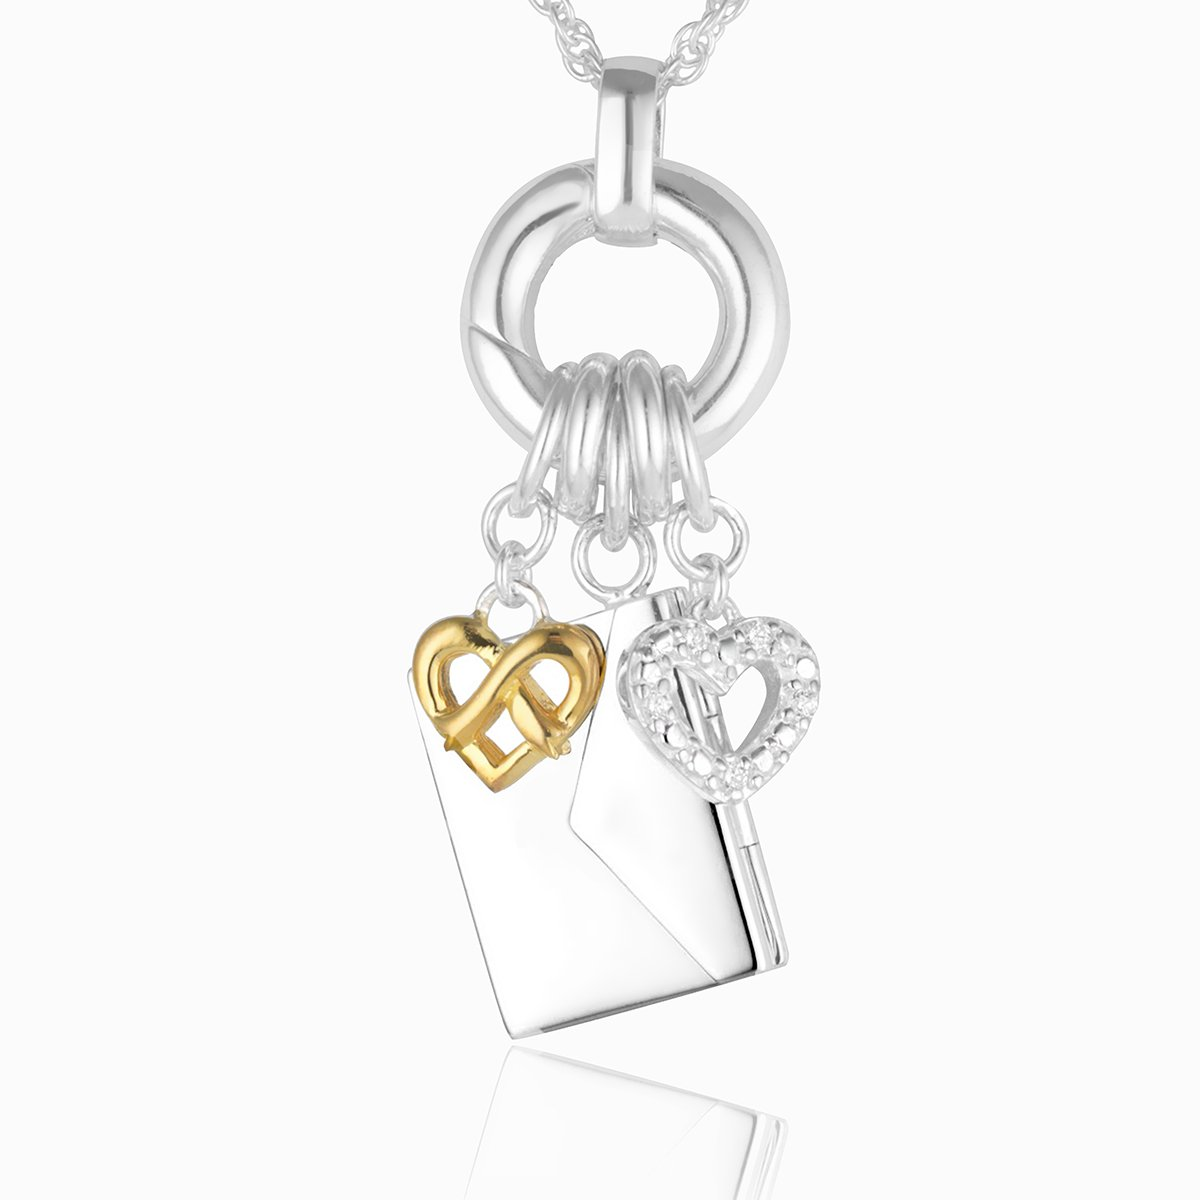 Product title: Love Letter Locket, product type: Locket